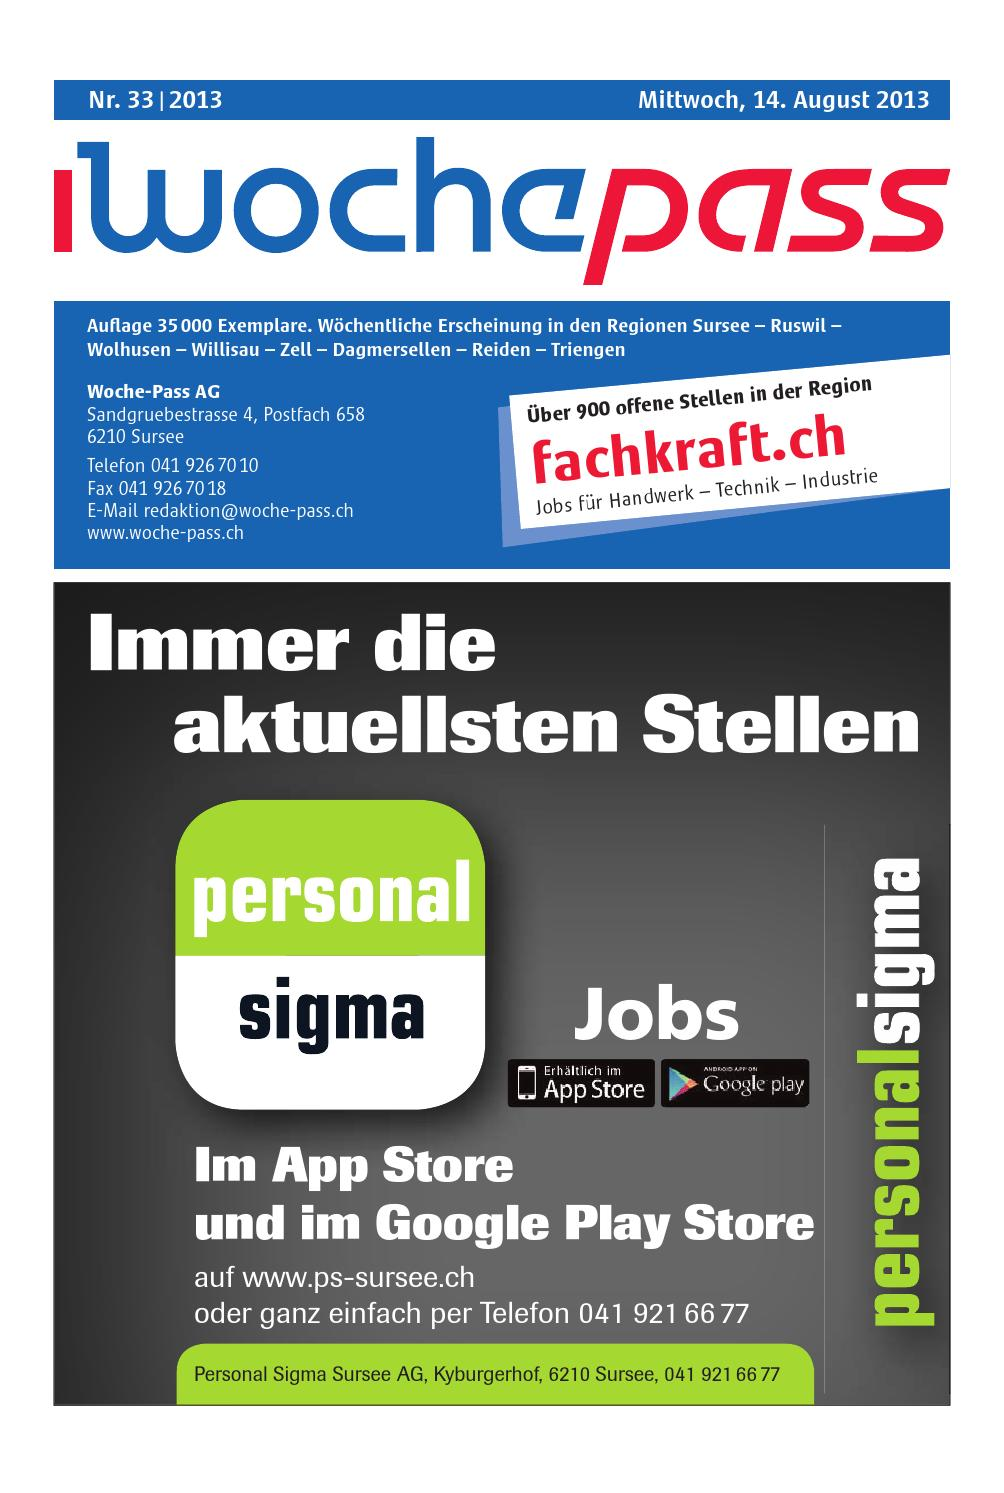 Woche-Pass   KW33   14. August 2013 by Woche-Pass AG - issuu